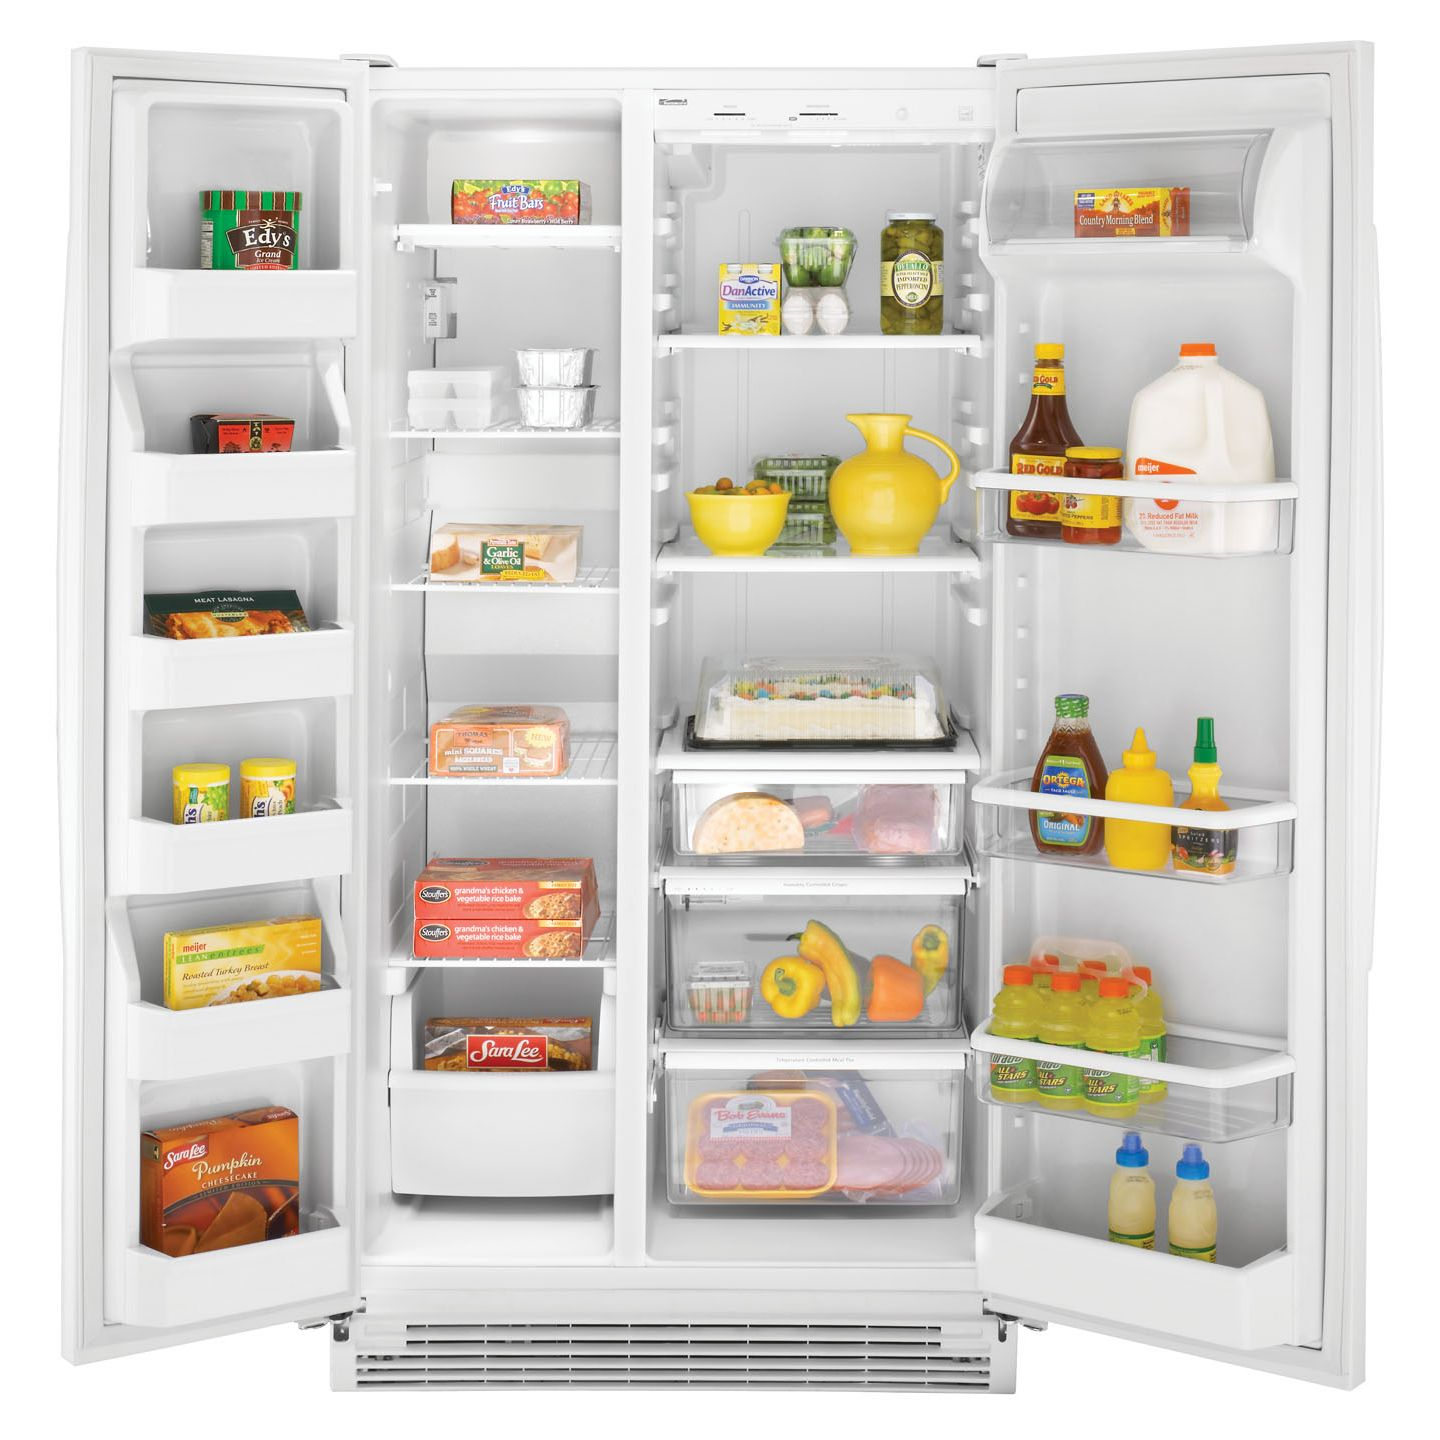 Kenmore 21.5 cu. ft. Non-Dispensing Side-By-Side Refrigerator